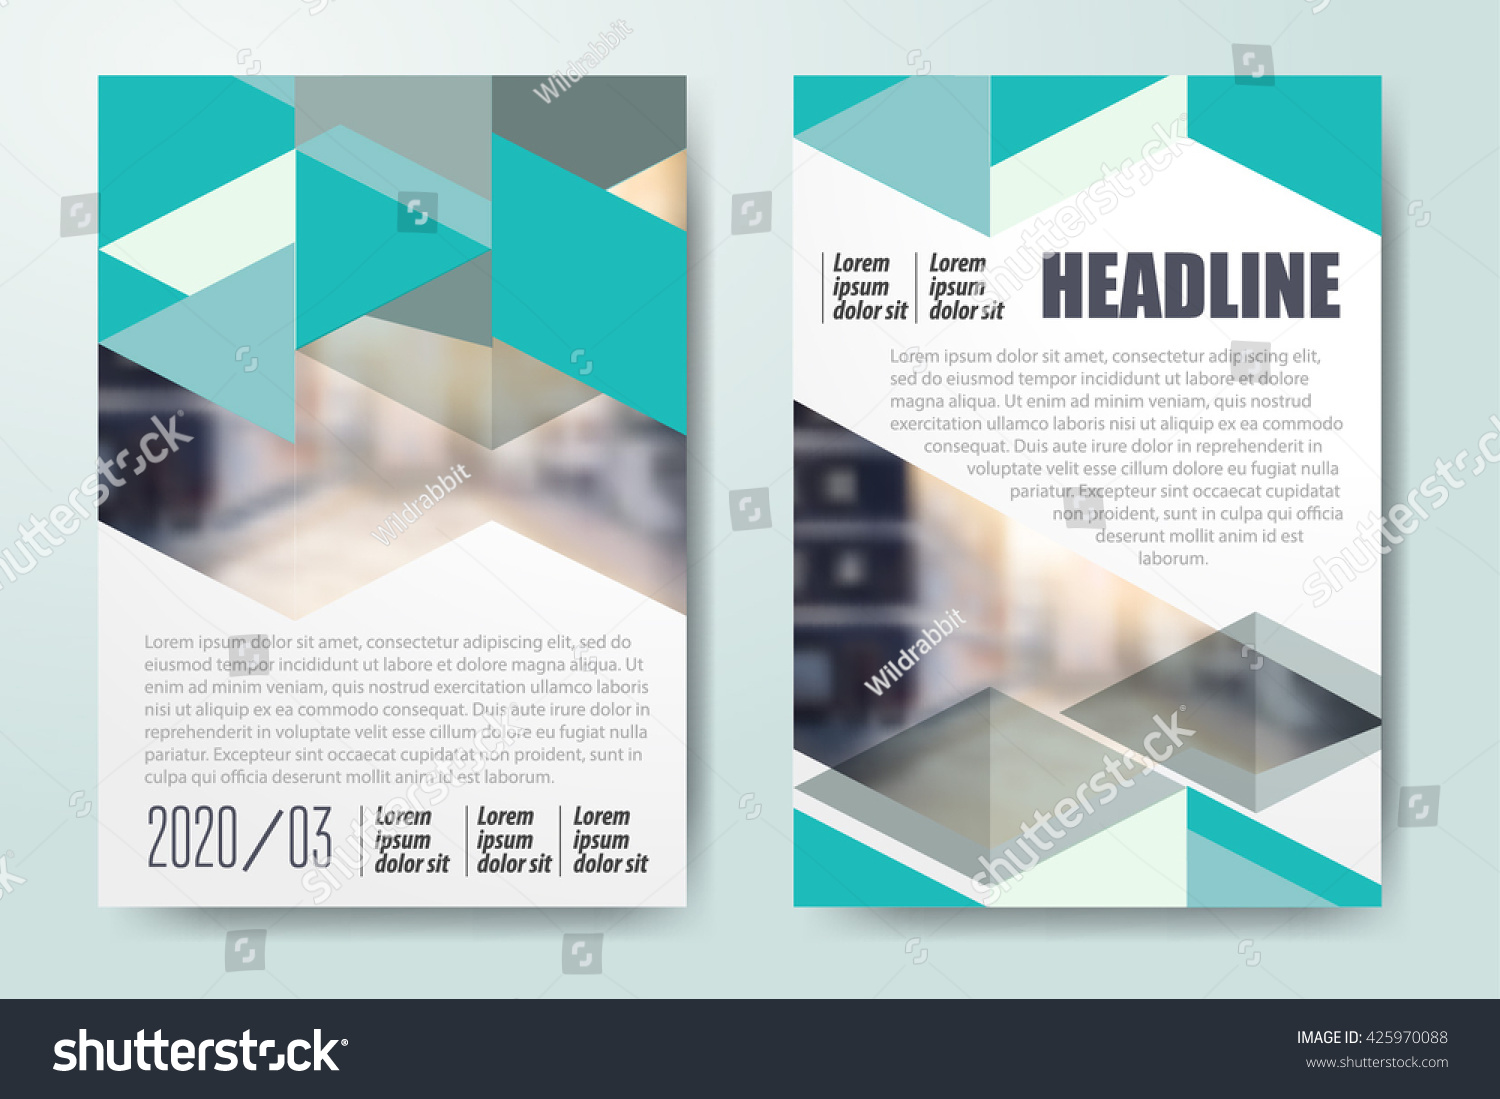 Book Cover Design Application : Brochure template design book cover layout stock vector